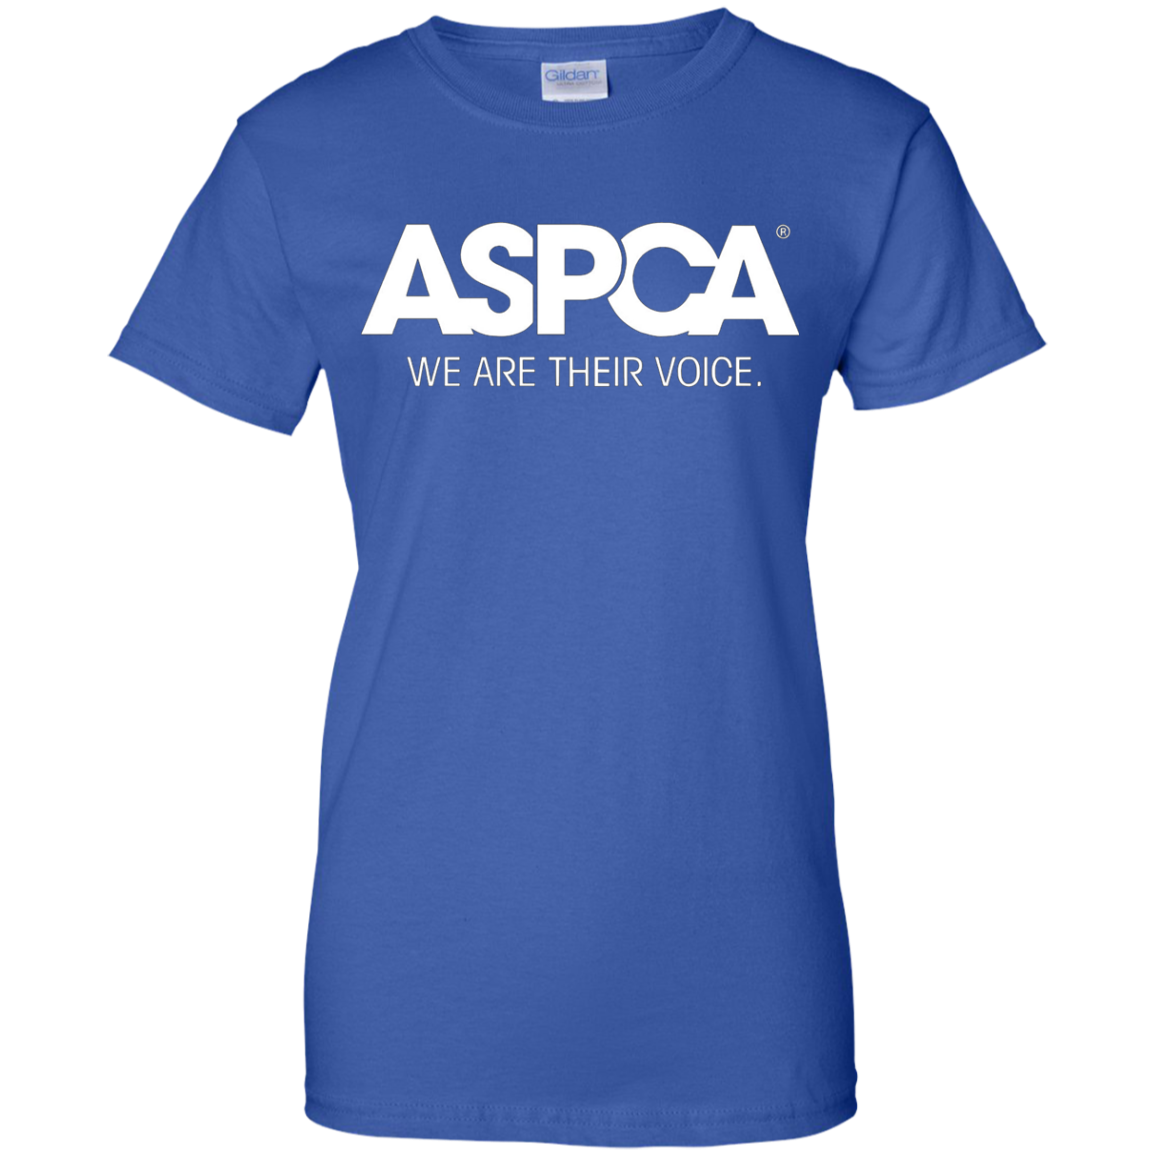 aspca apparel